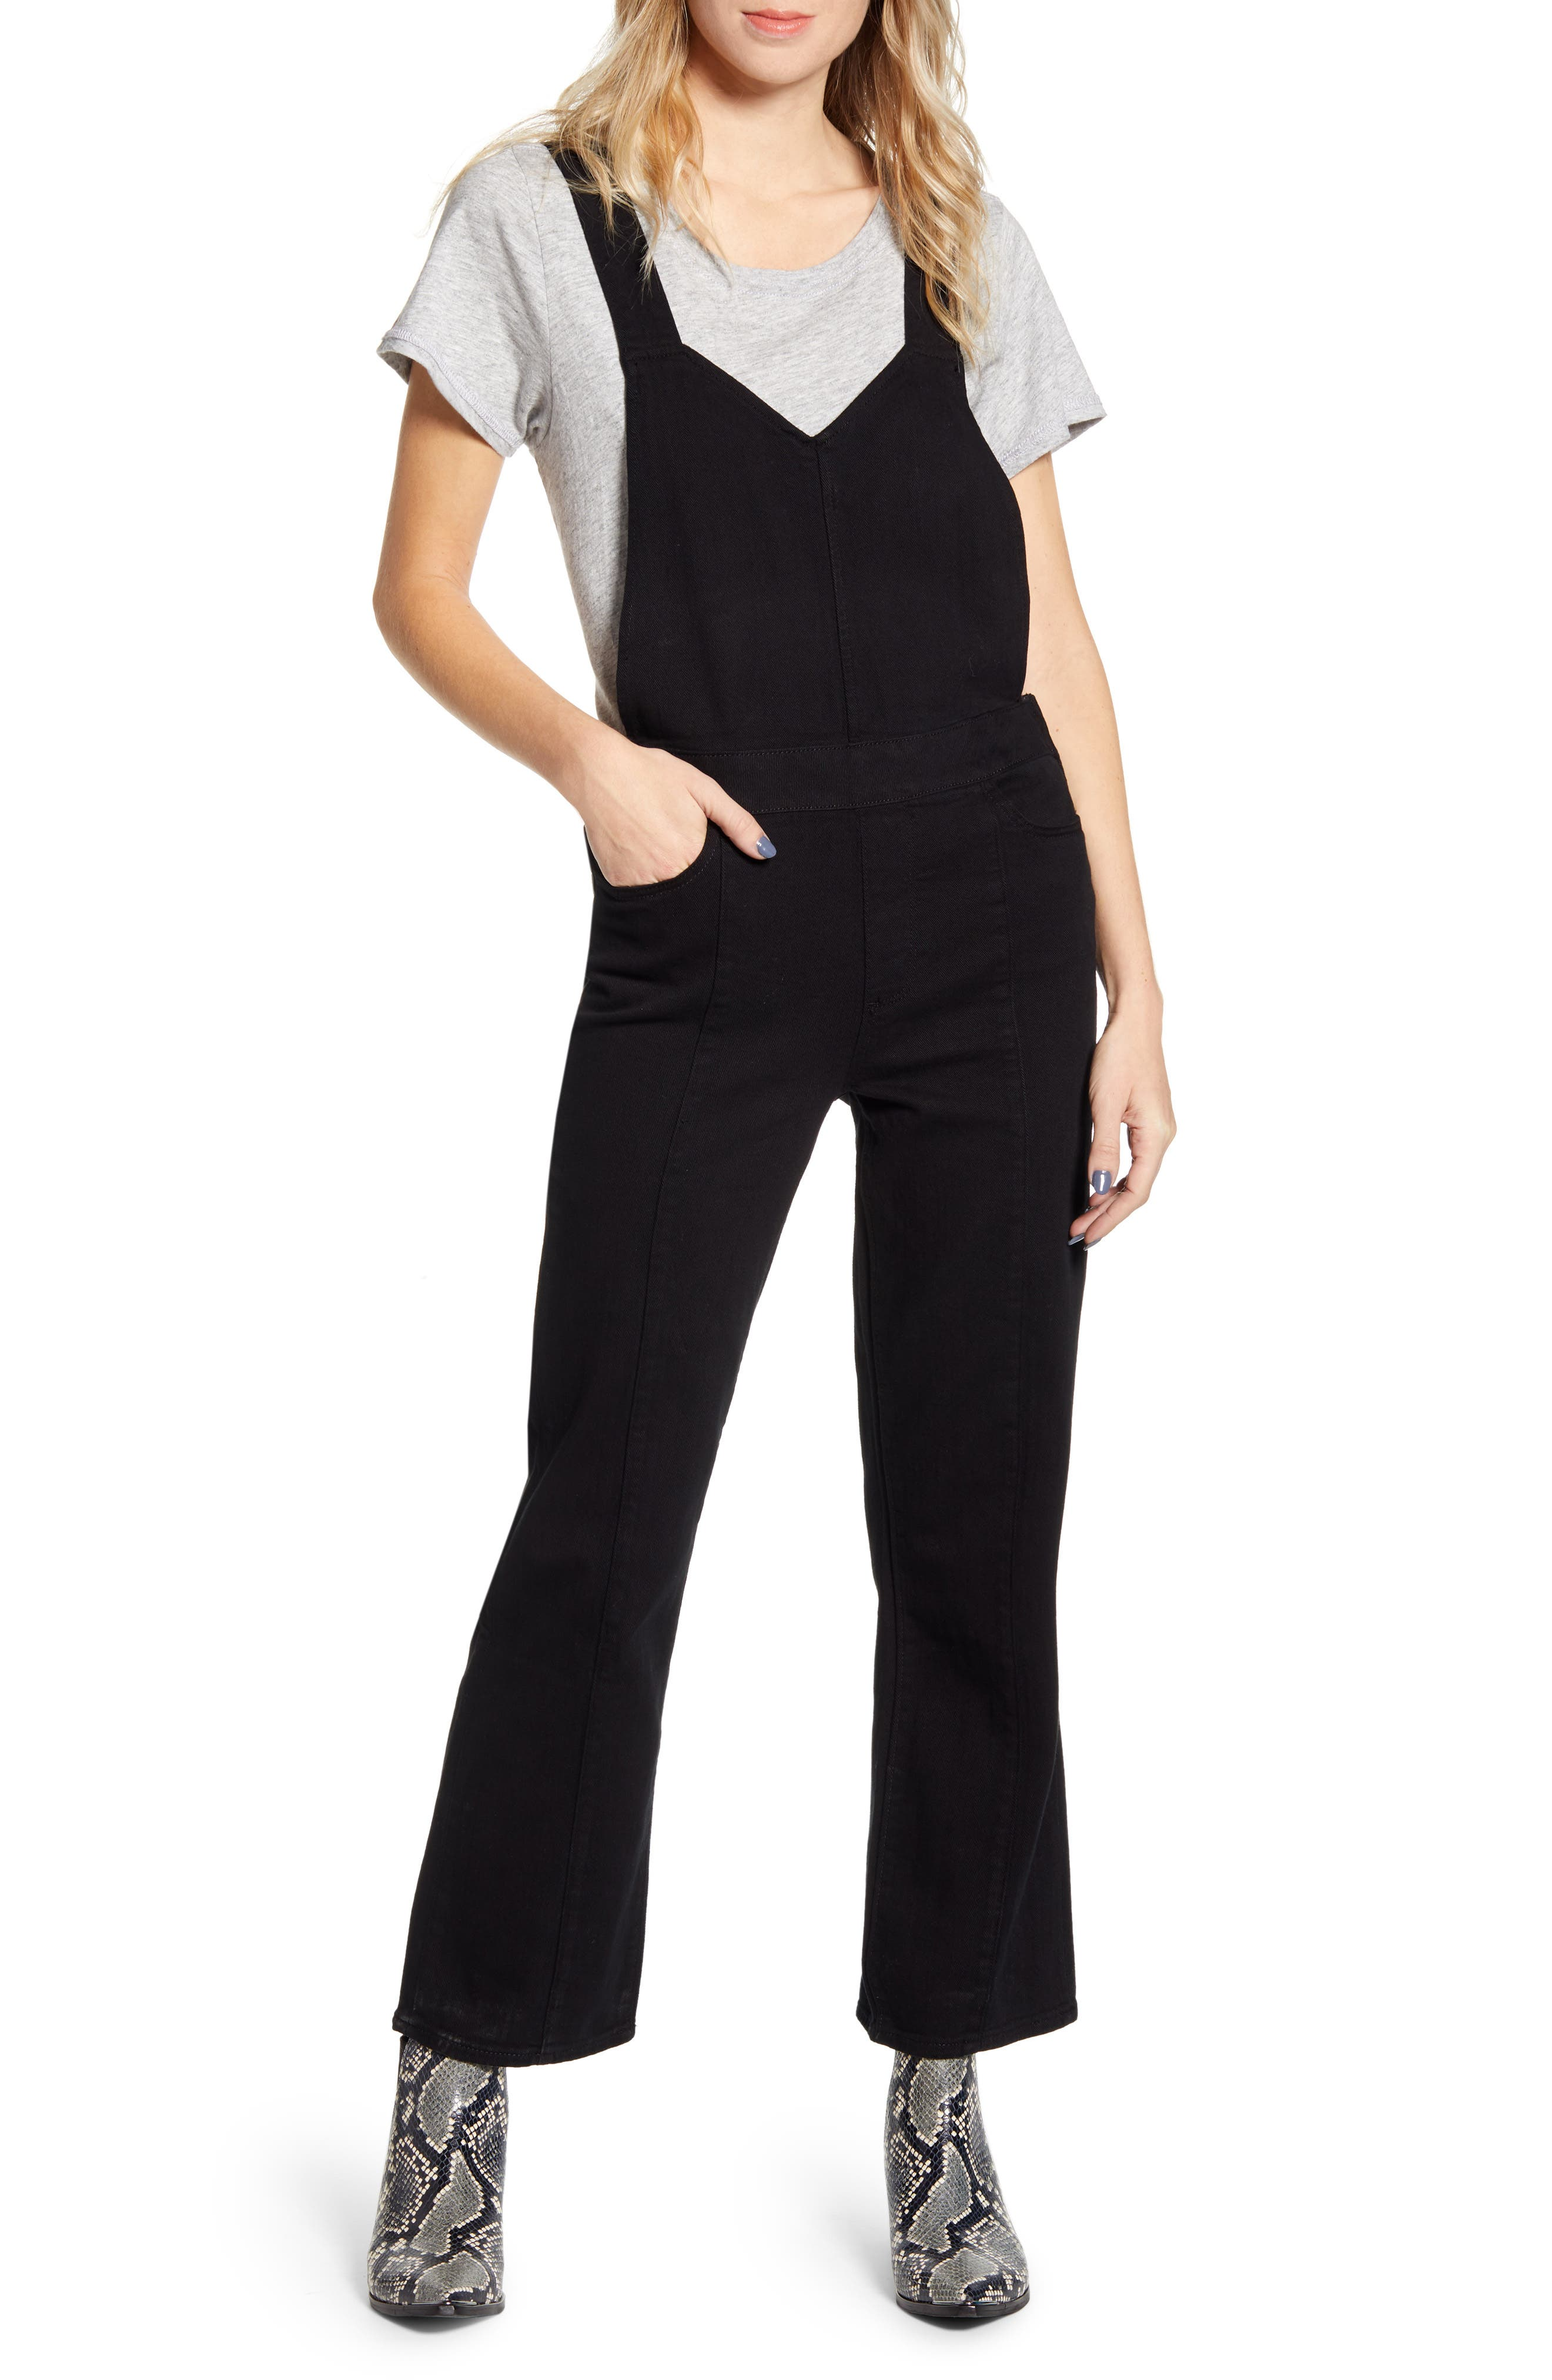 Paige Suits Atley Crop Flare Overalls